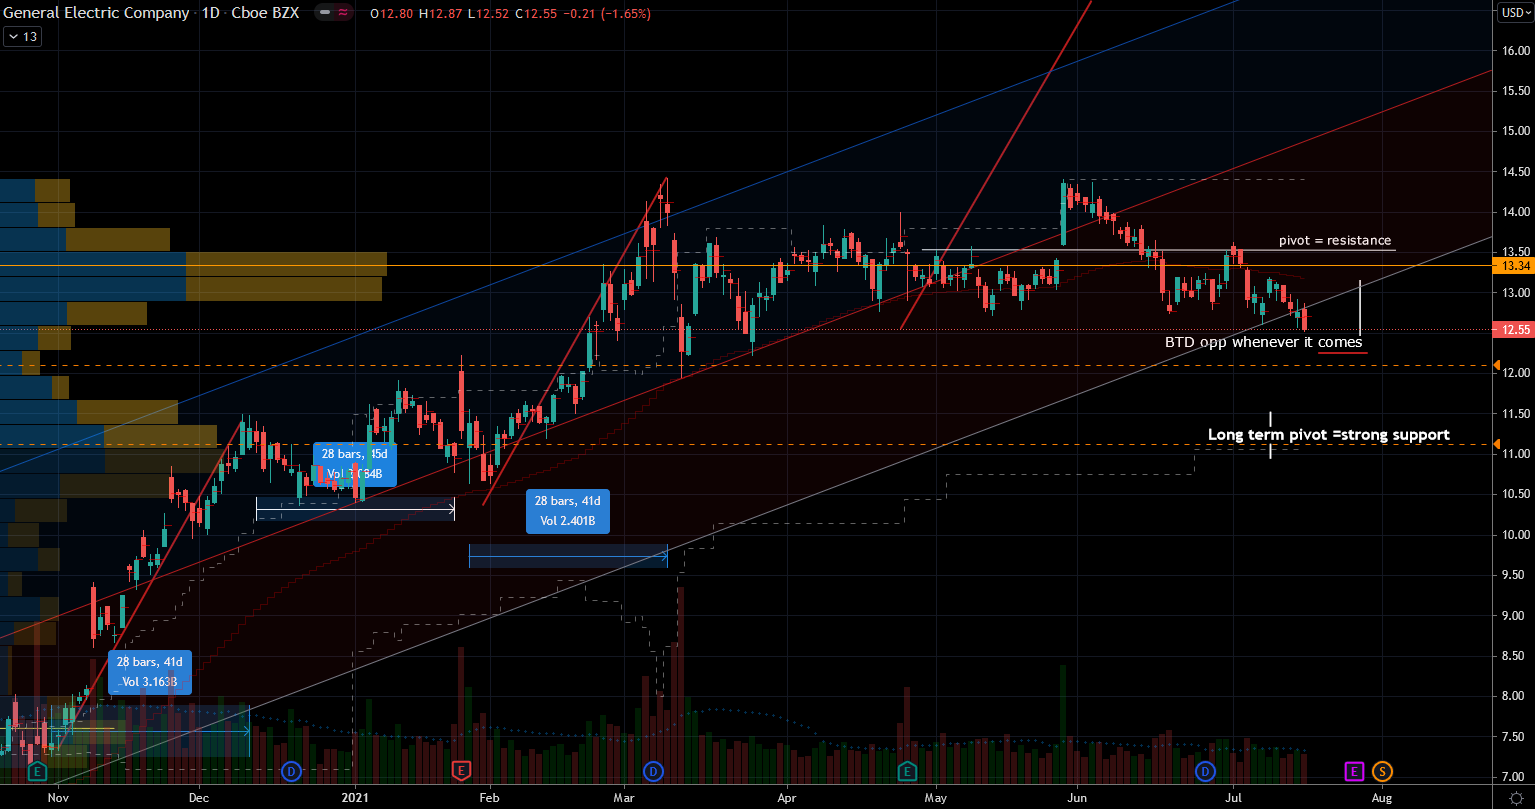 General Electric (GE) Stock Chart Showing Short Term Support and Resistance